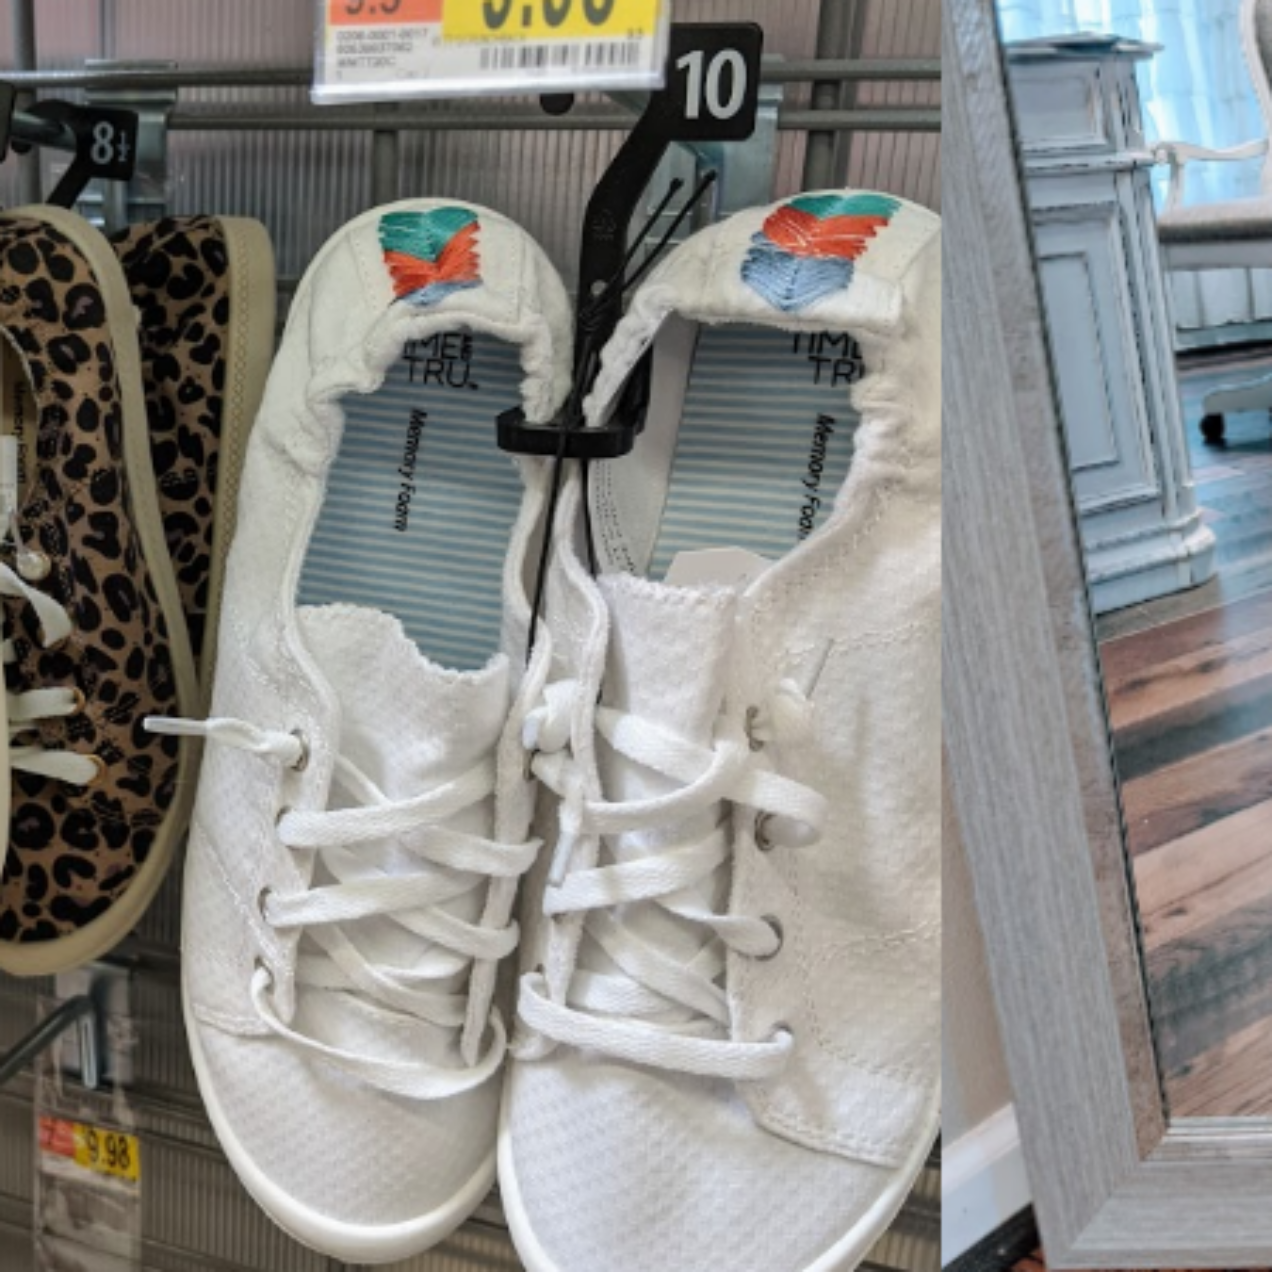 Time and Tru Scrunchback Sneakers Only $10!